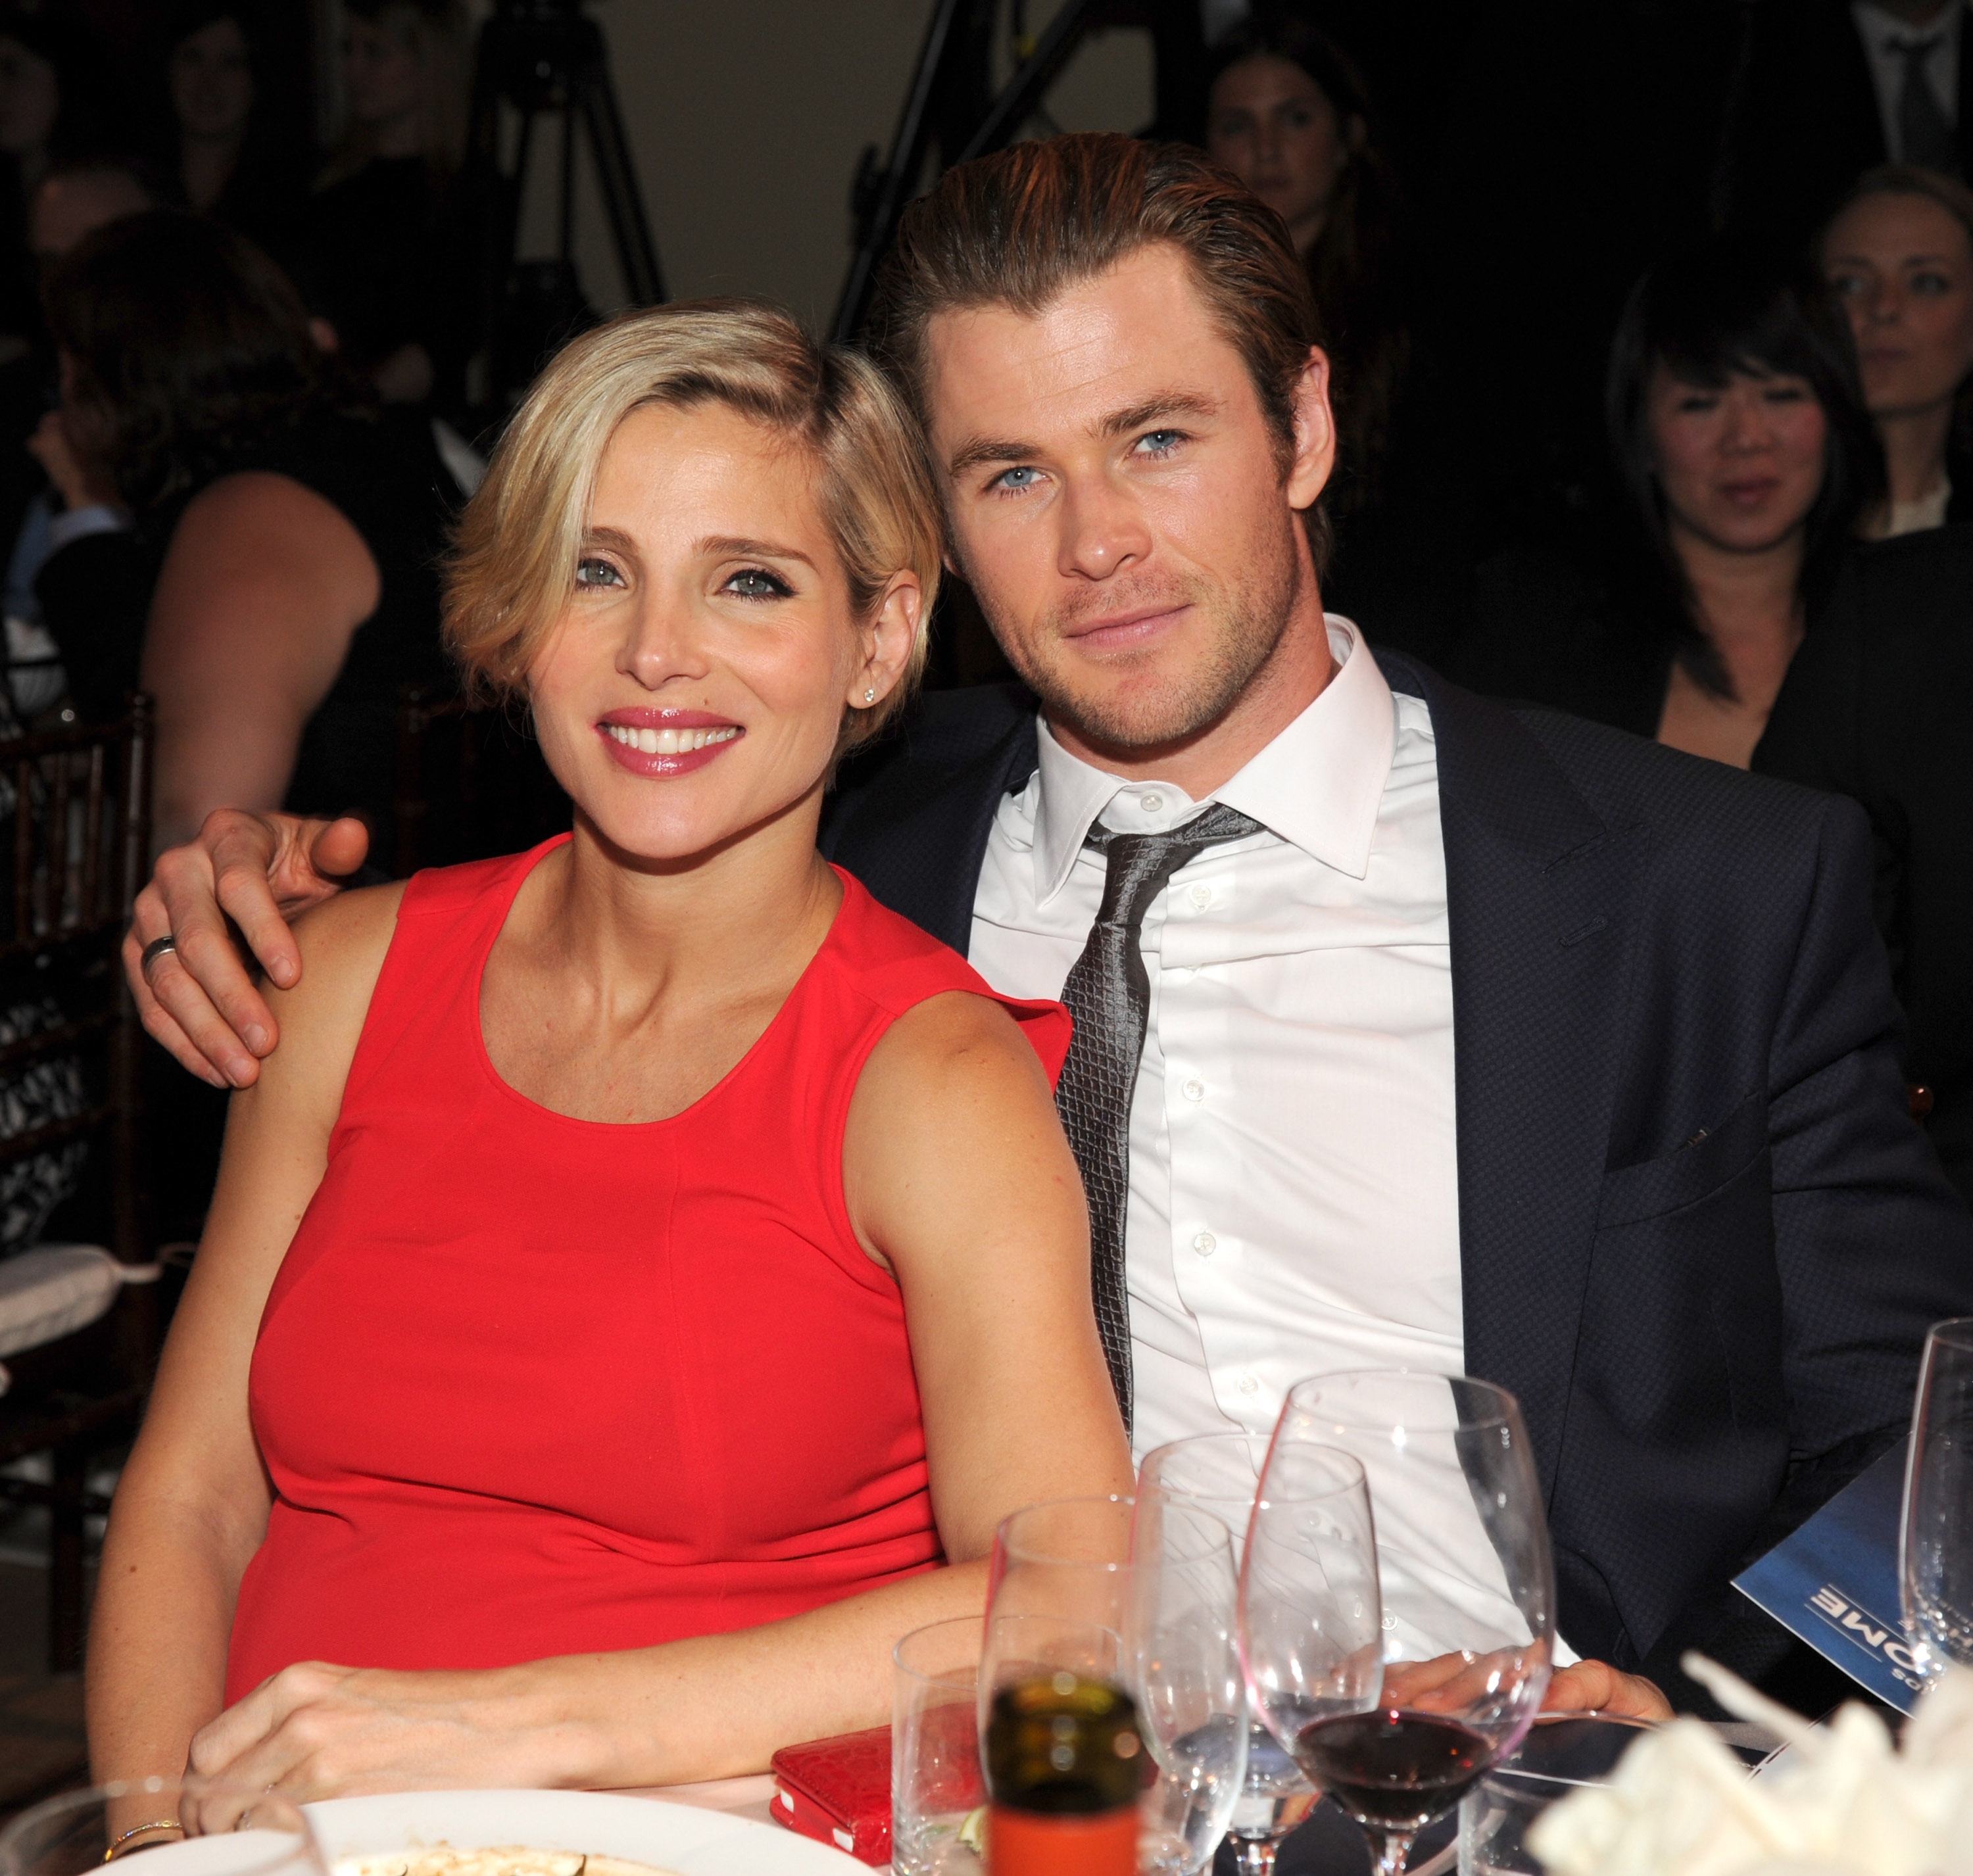 Chris Hemsworth and Elsa Pataky attend the 3rd annual Sean Penn and Friends HELP HAITI HOME Gala benefiting presented by Giorgio Armani at Montage Beverly Hills on Jan. 11, 2014 in Beverly Hills.